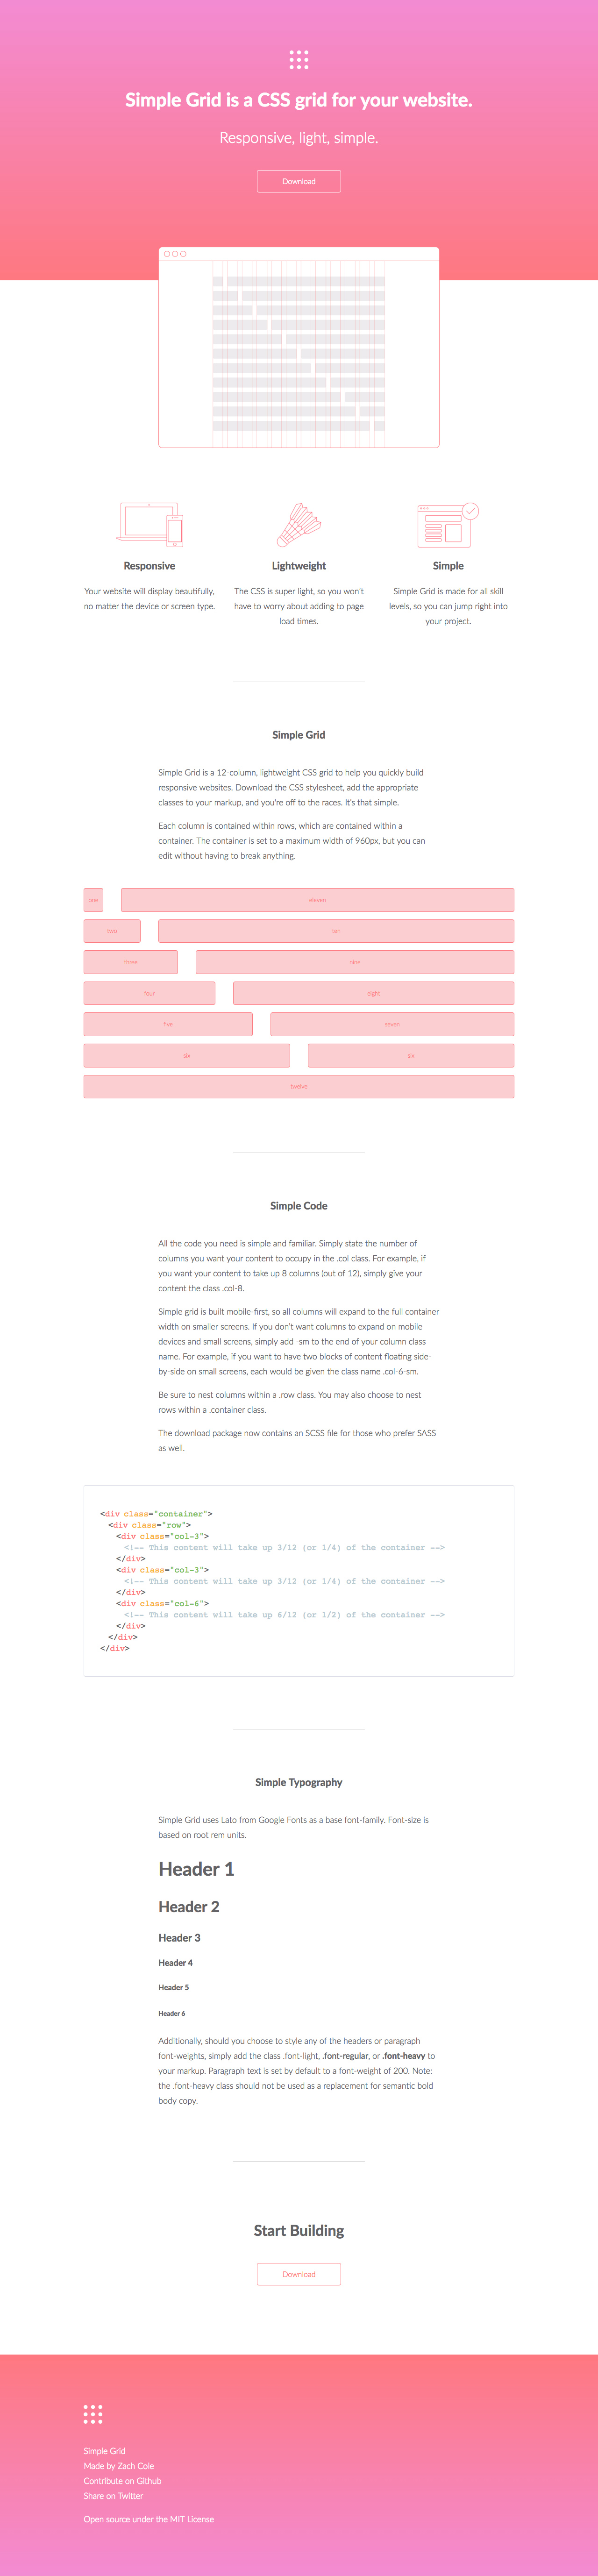 Simple Grid Website Screenshot